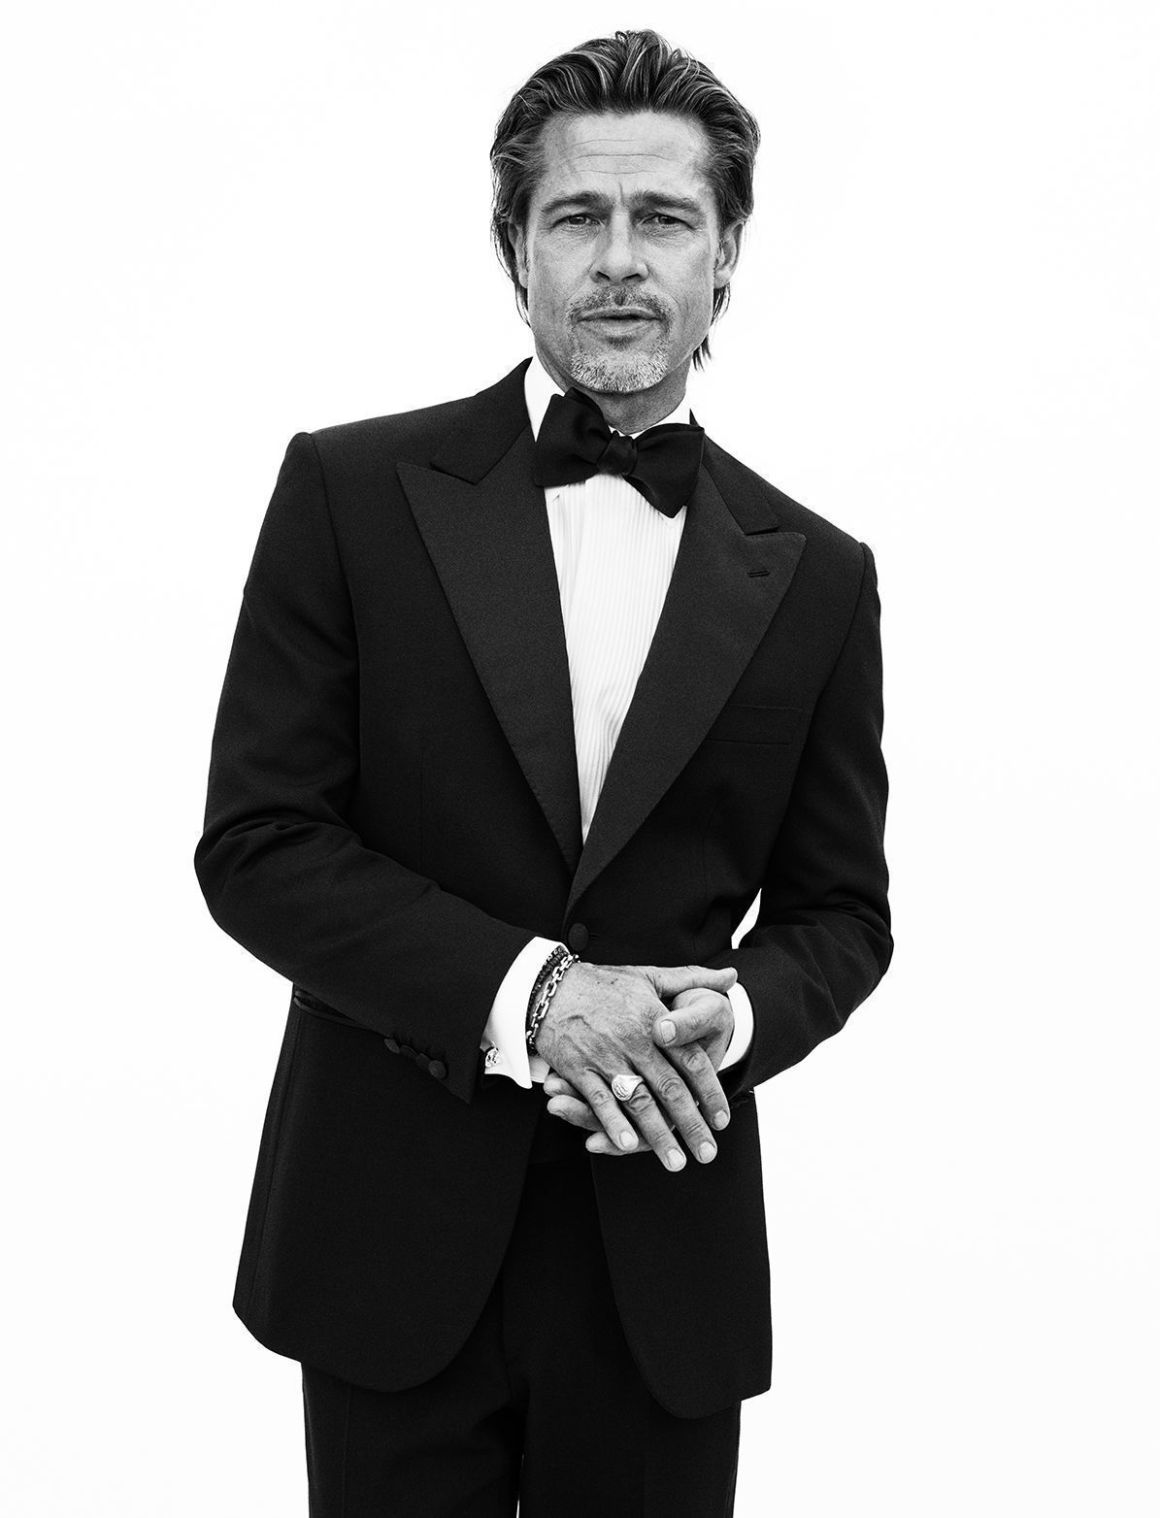 Brad Pitt's Looking As Handsome As Ever in New Brioni Campaign